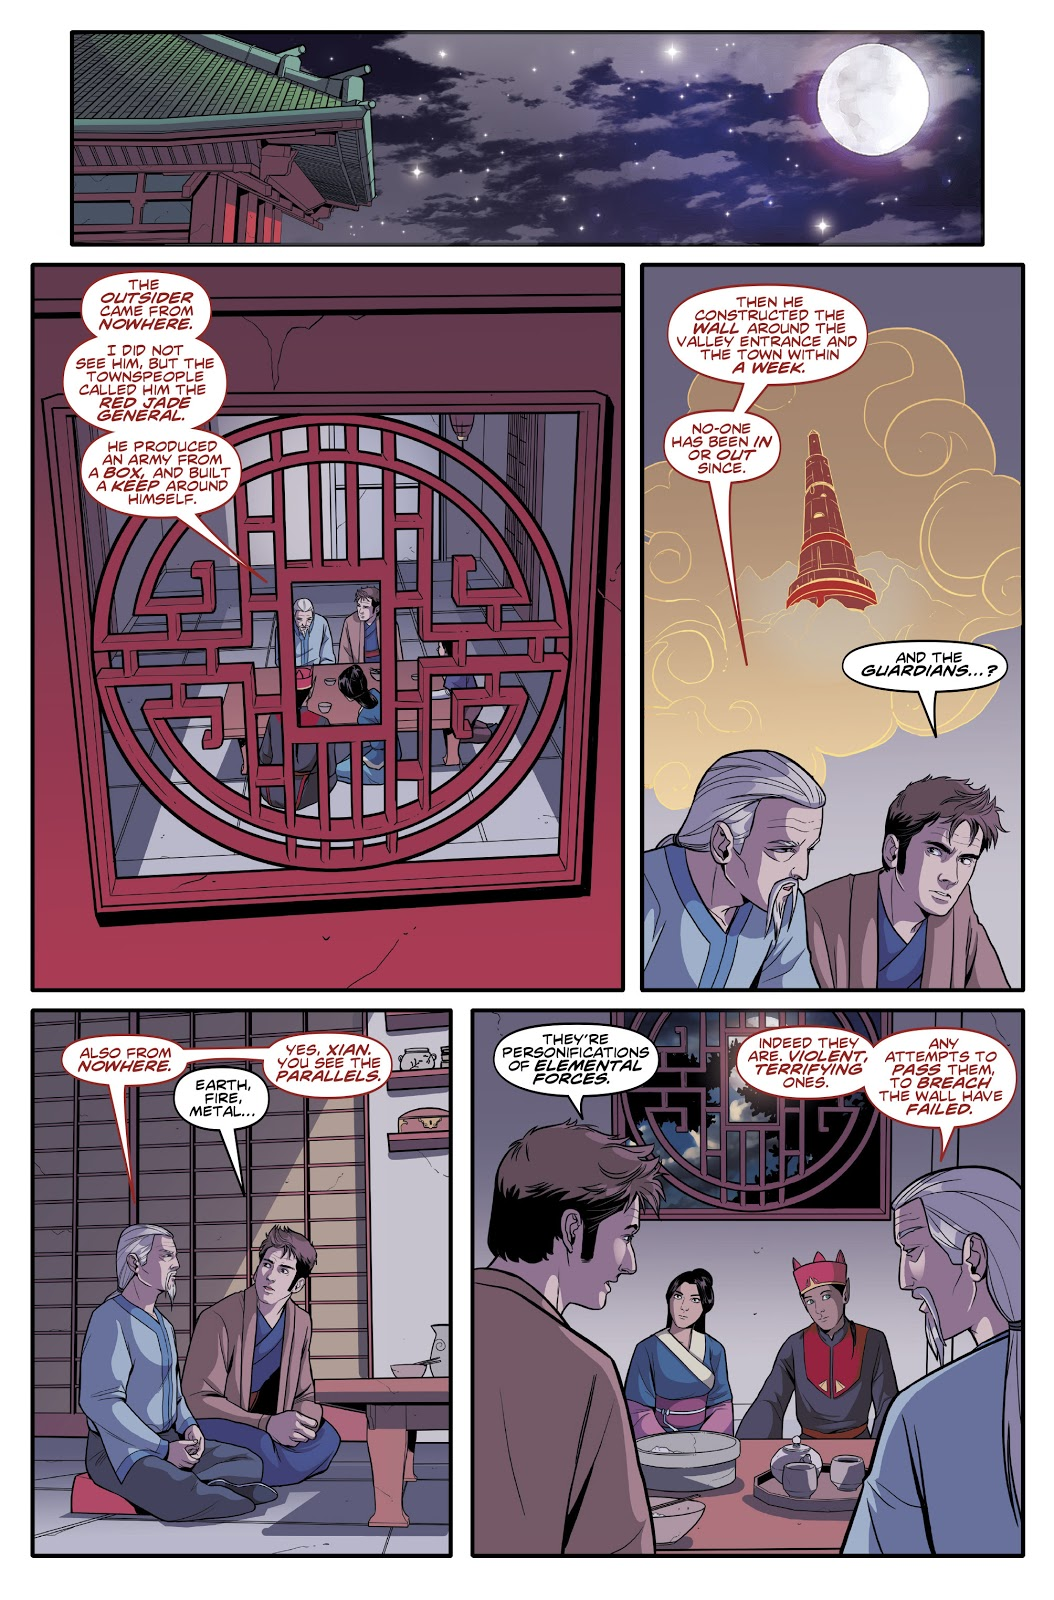 Doctor Who The Tenth Doctor Vol 8 Breakfast at Tyranny's review